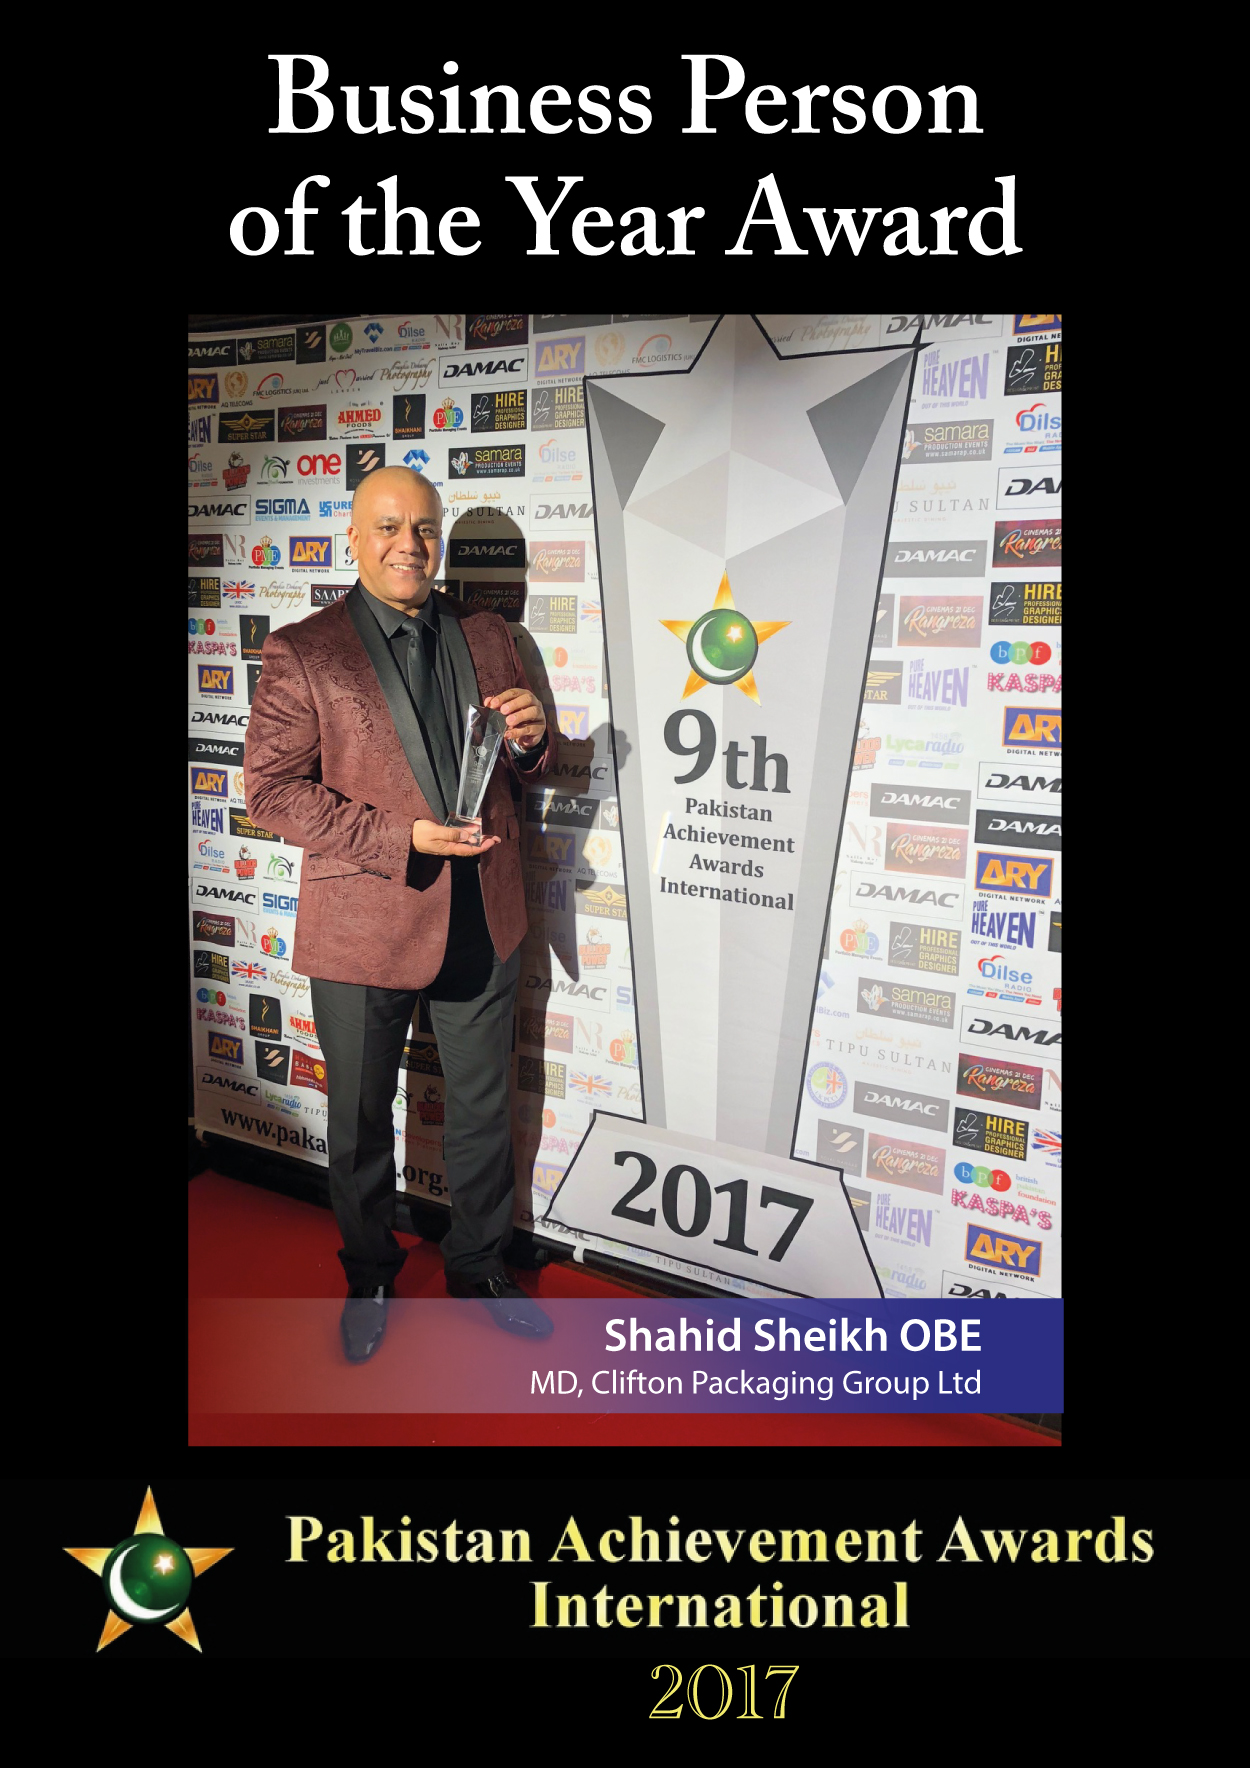 Business Person of the Year Award. Pakistan Achievement Awards International 2017, Shahid Sheikh OBE MD, Clifton Packaging Group Ltd.